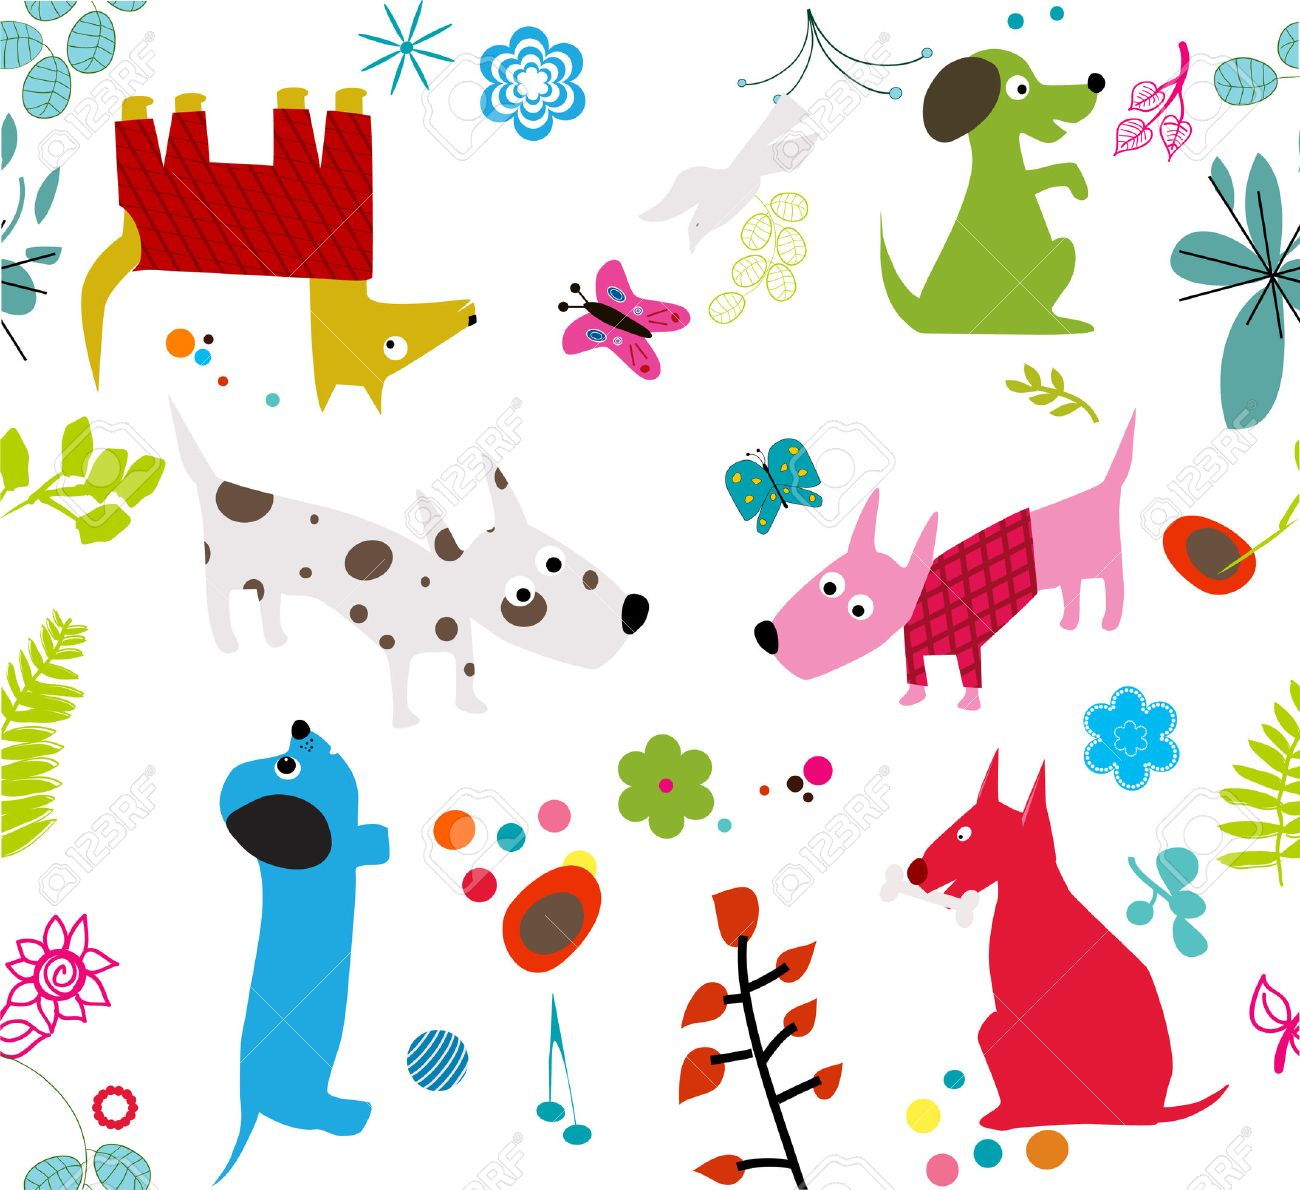 cute dogs wallpaper -seamless- royalty free cliparts, vectors, and